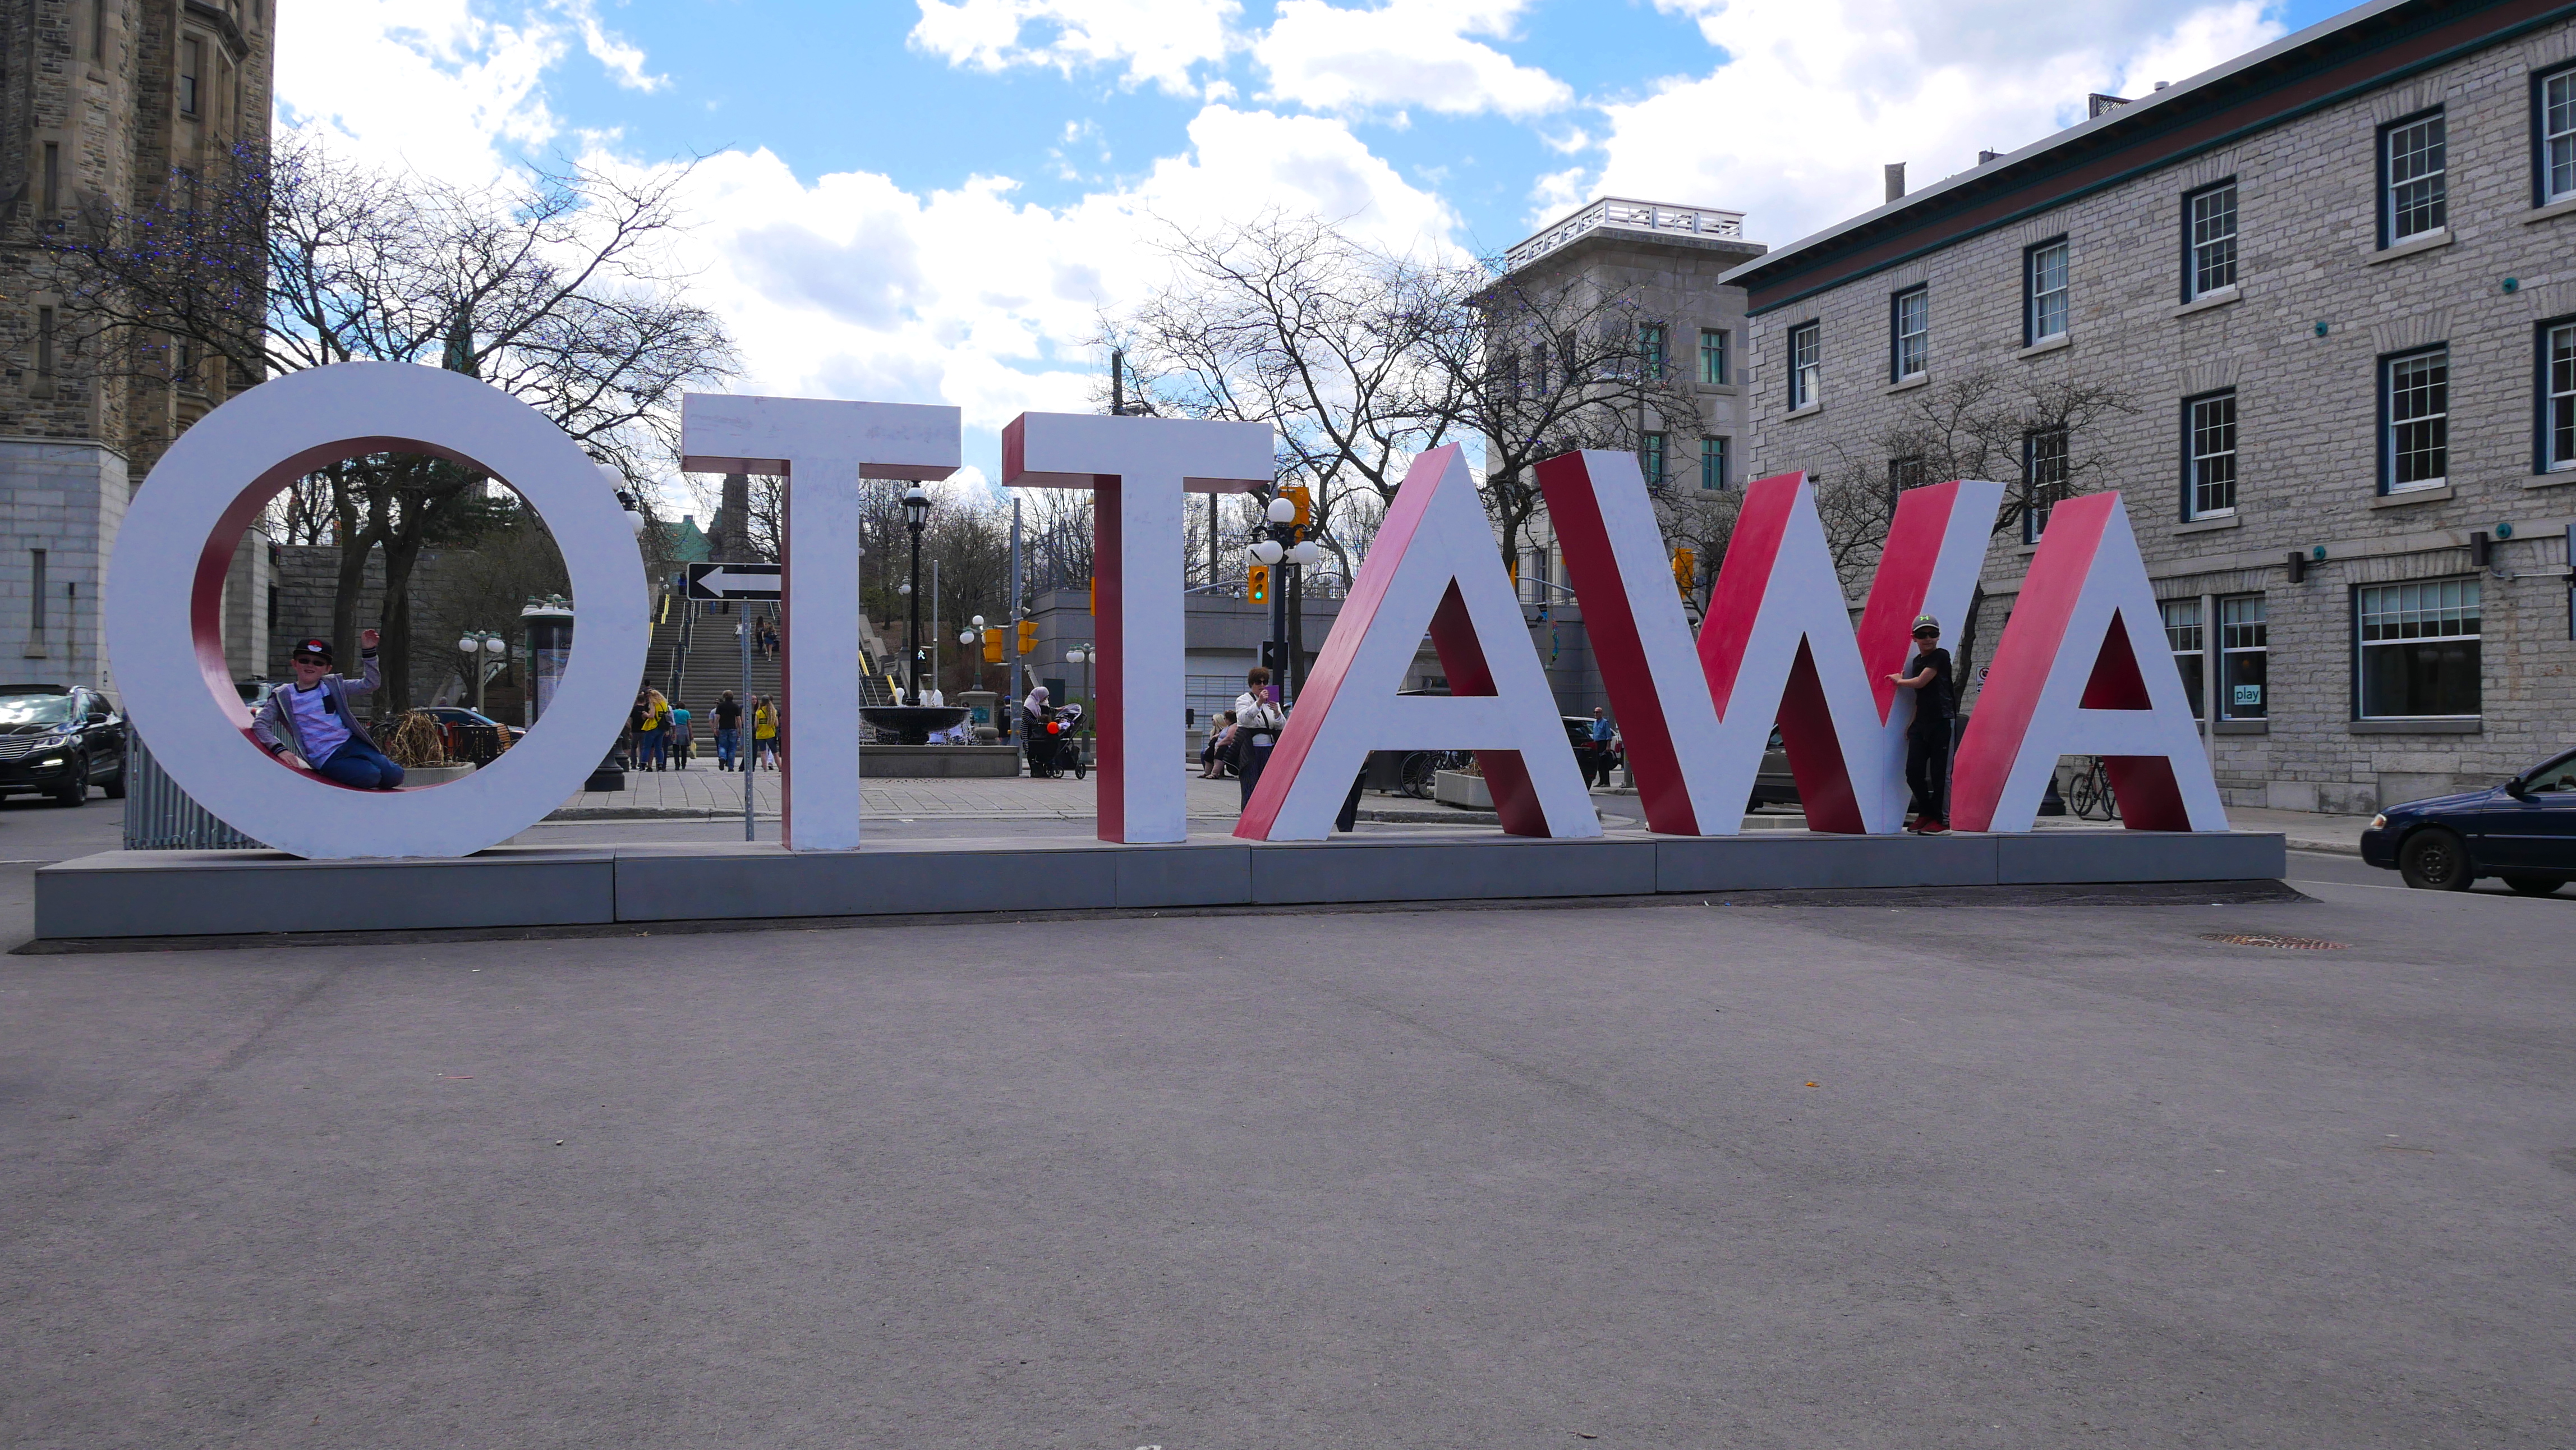 Ottawa, the capital of Canada 🇨🇦 should it be overlooked?